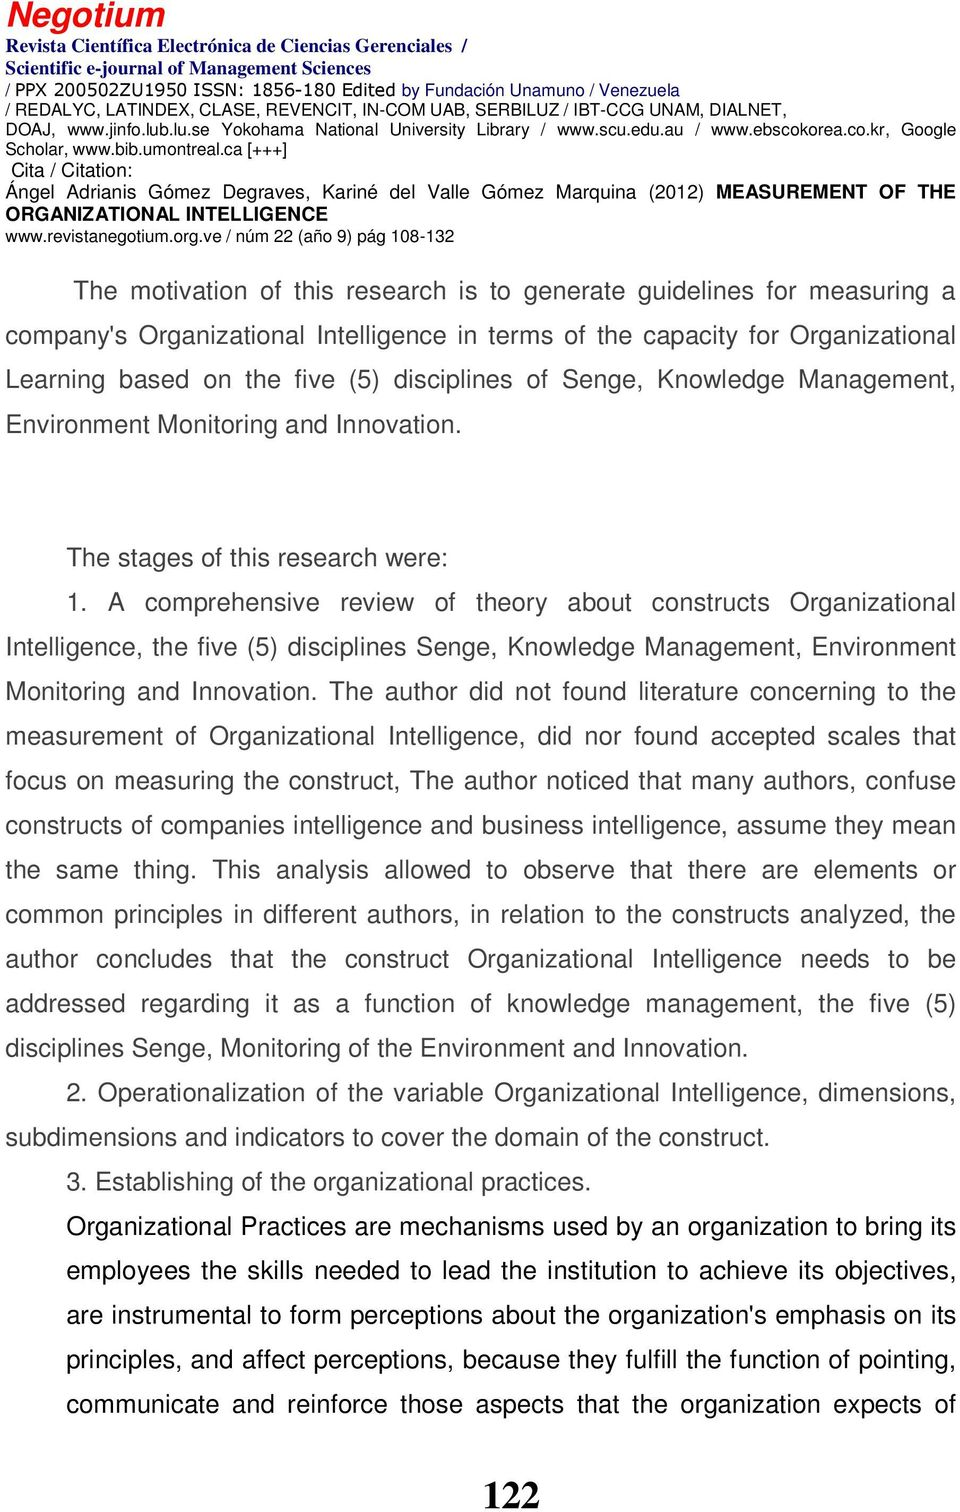 A comprehensive review of theory about constructs Organizational Intelligence, the five (5) disciplines Senge, Knowledge Management, Environment Monitoring and Innovation.